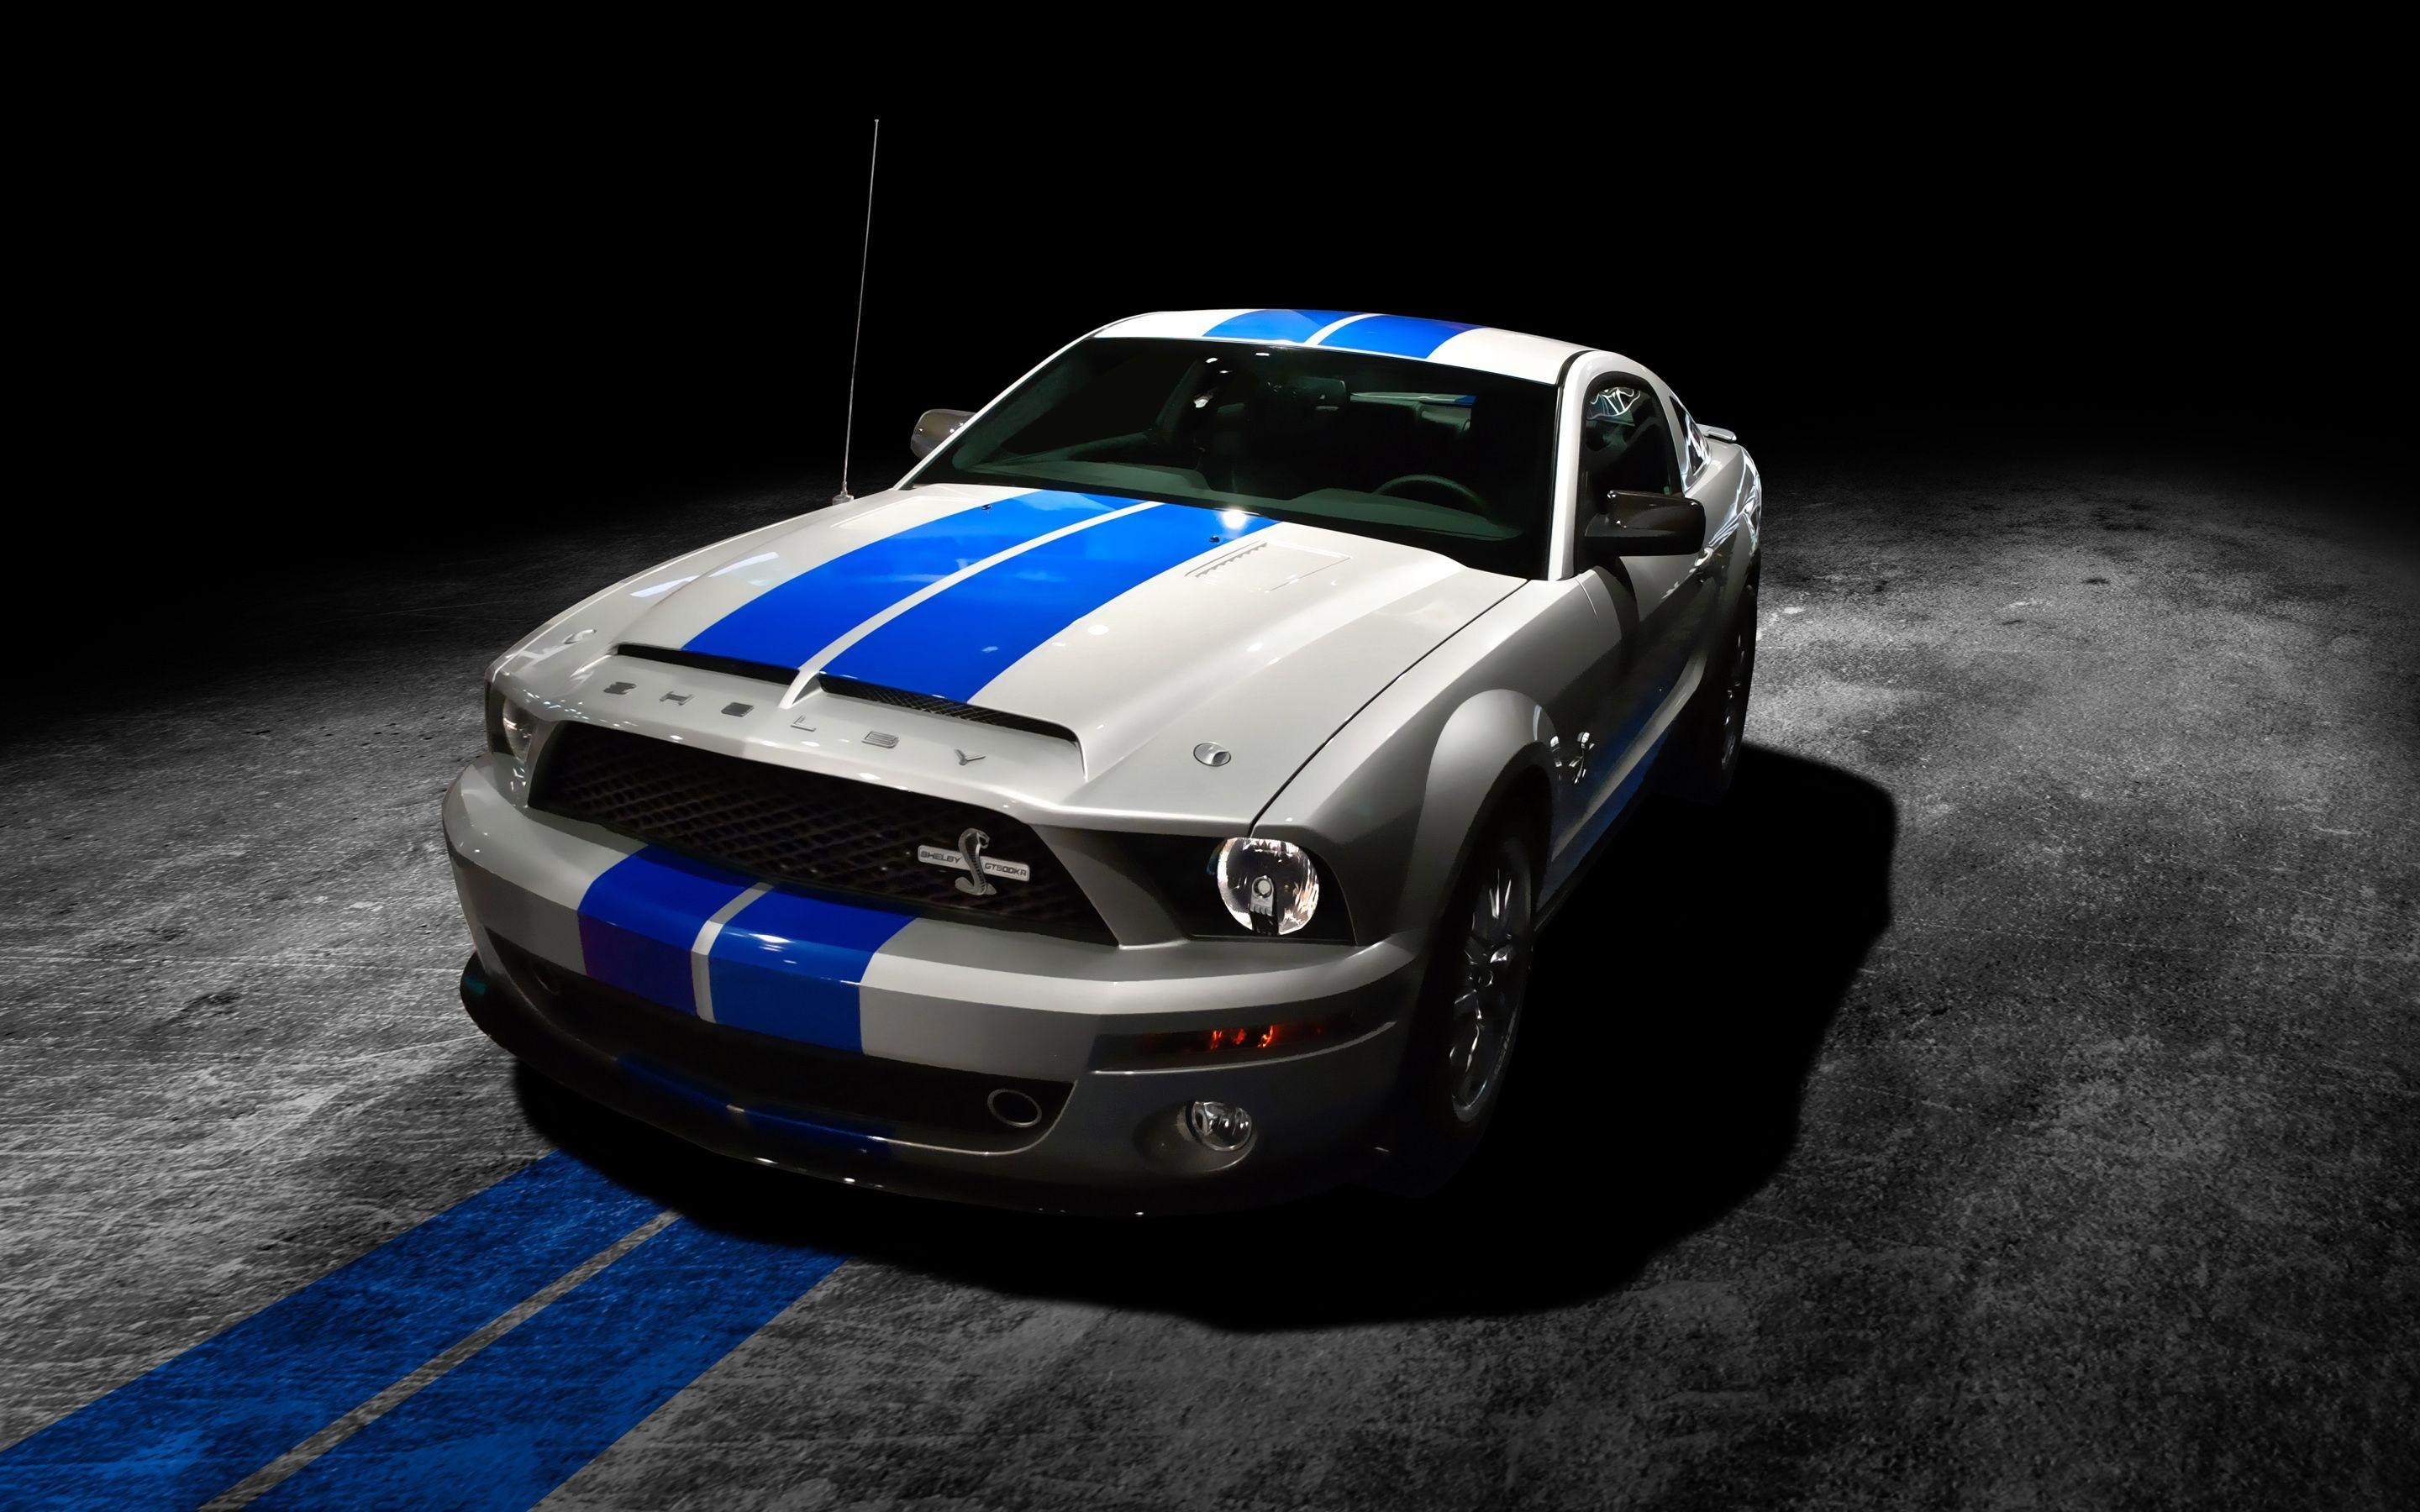 The made of this company is long lasting. Wallpapers Mobil Sport Full Hd Wallpaper Cave